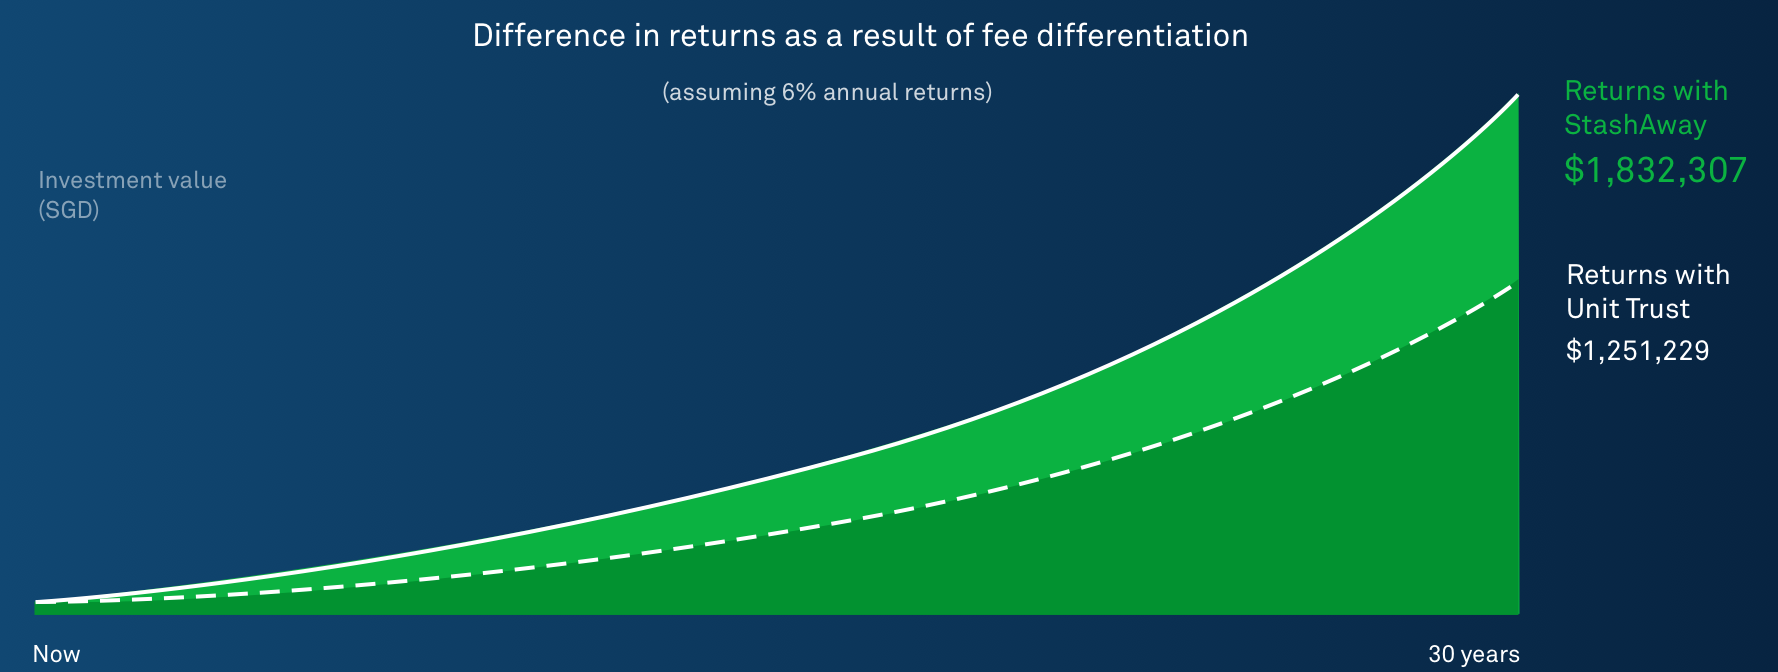 Difference in Returns Due to Fees